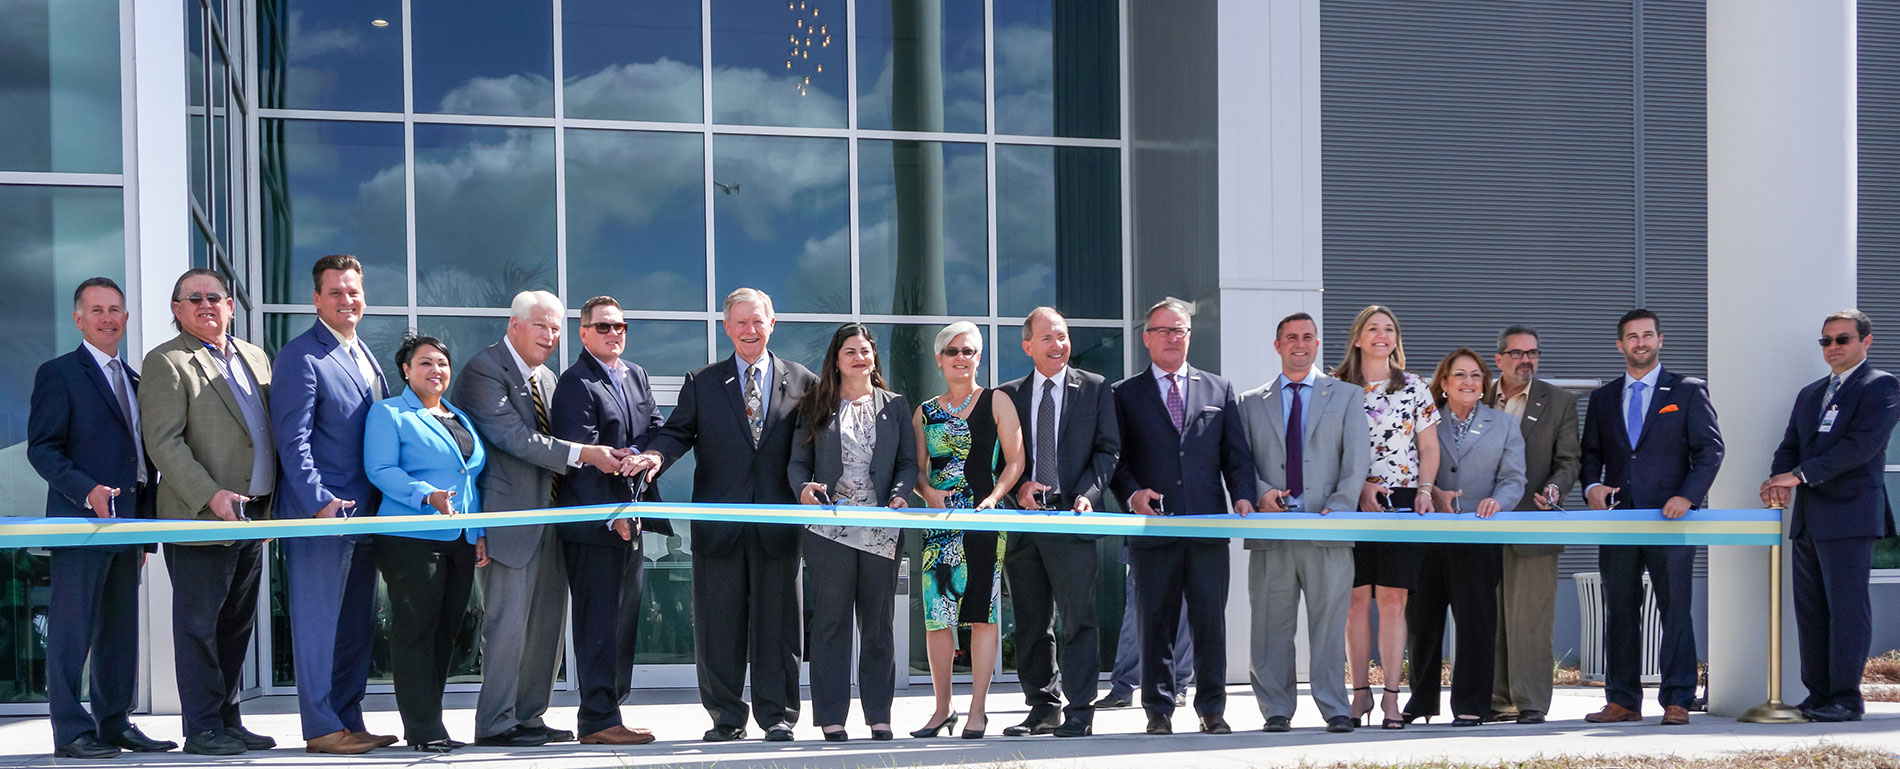 041417_NeoCity_Ribbon_Cutting.jpg